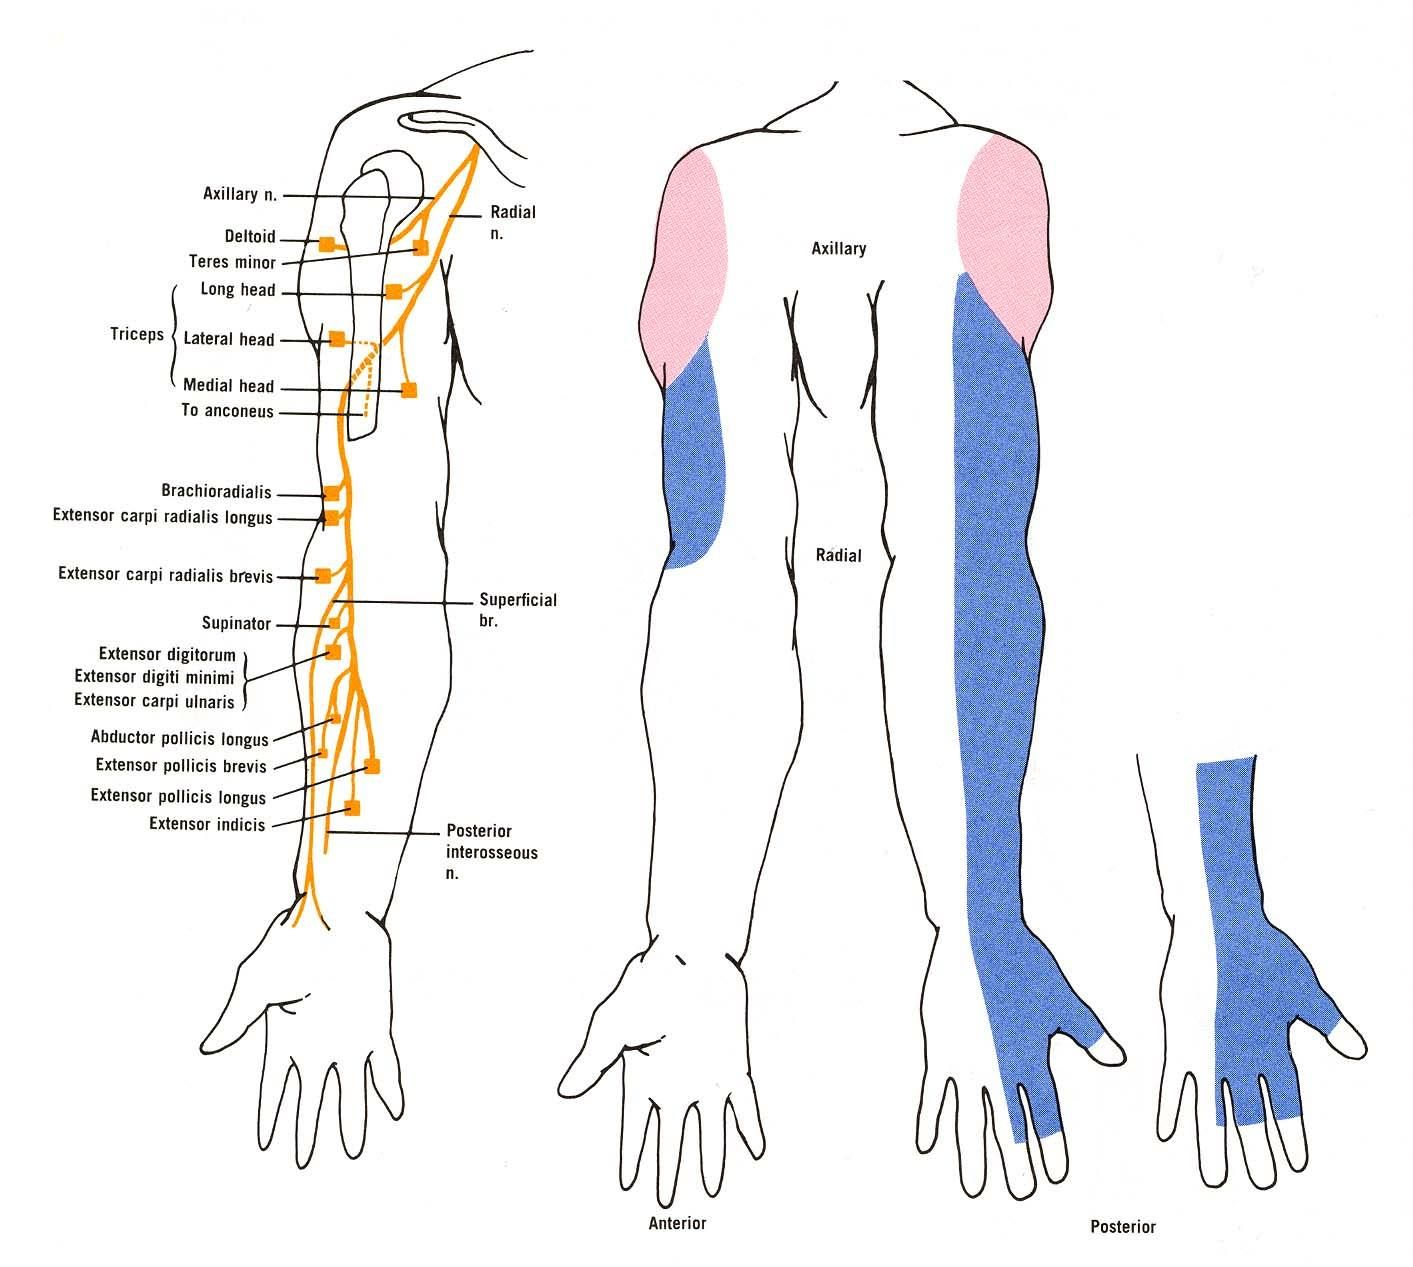 ulnar nerve diagram 1968 chevelle wiring radial and its clonical correlation made simple